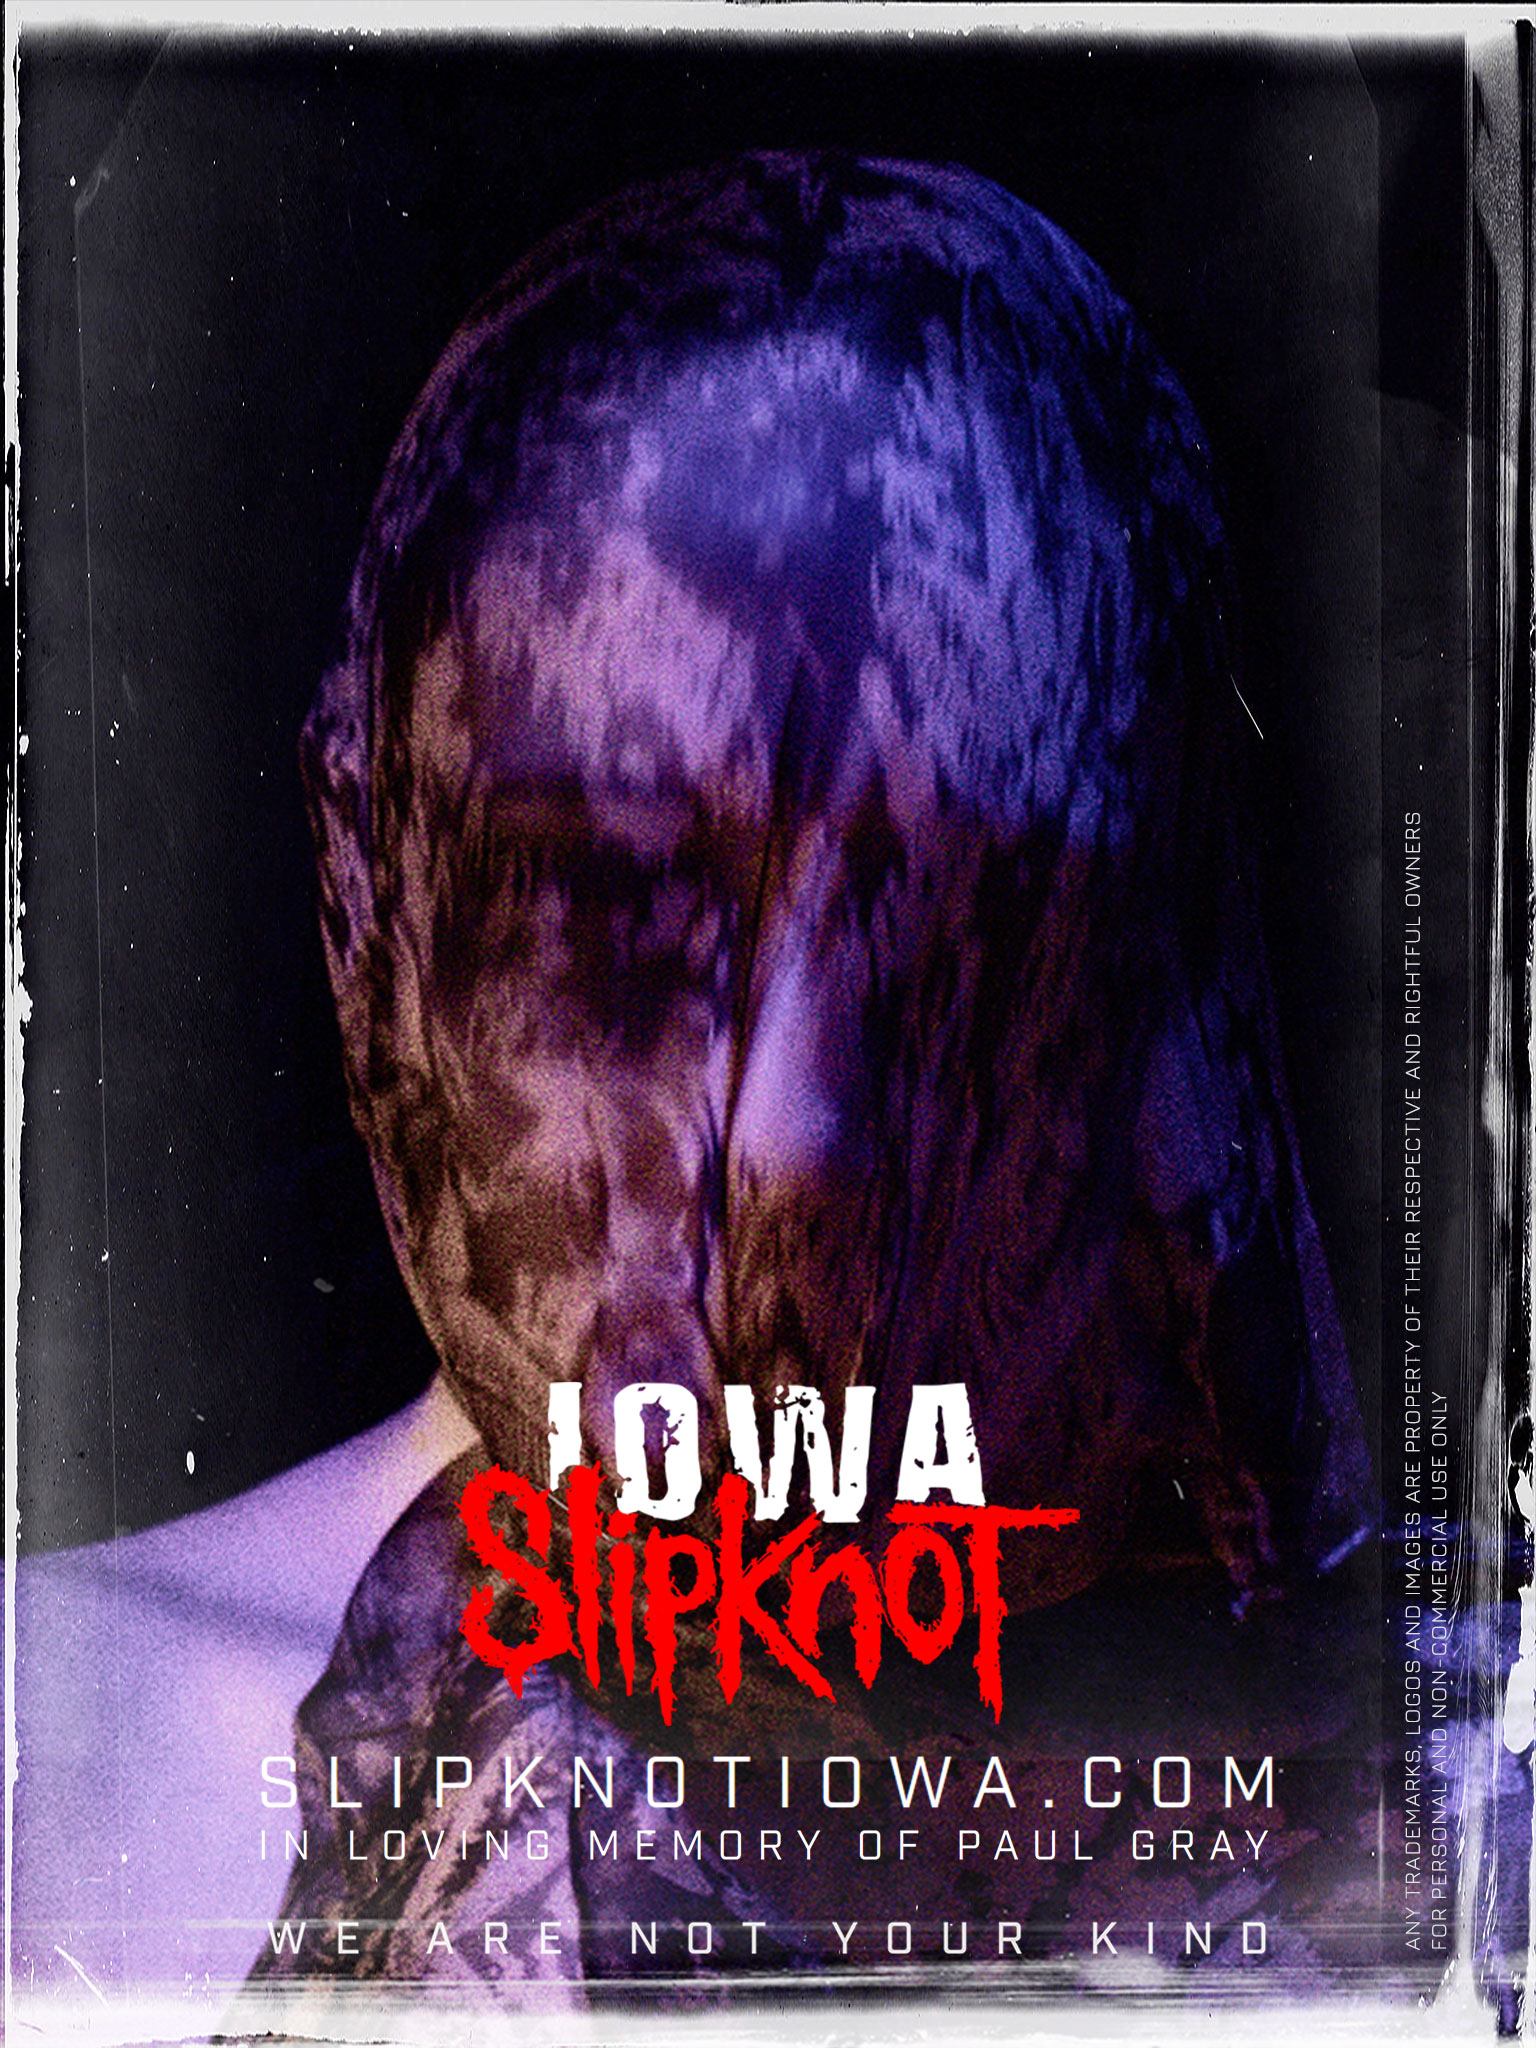 Slipknot Wallpapers - Slipknot Fansite - SlipknotIowa com